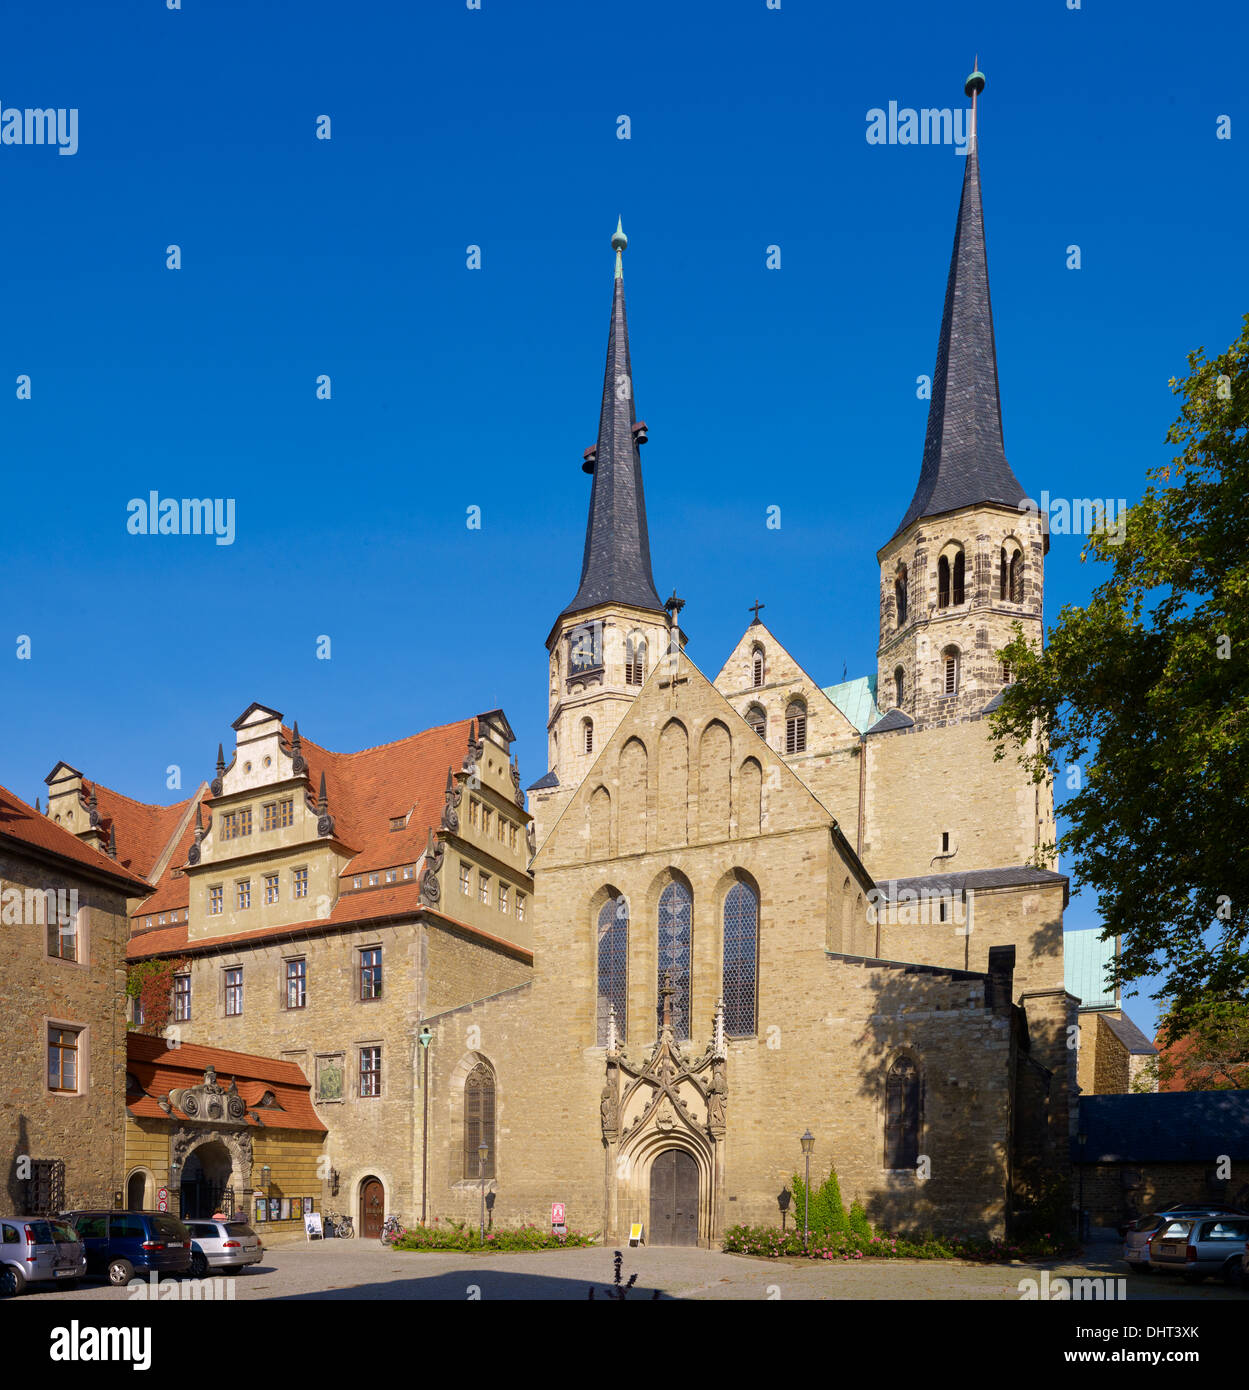 Merseburg Cathedral with priory, Merseburg, Saxony-Anhalt, Germany - Stock Image